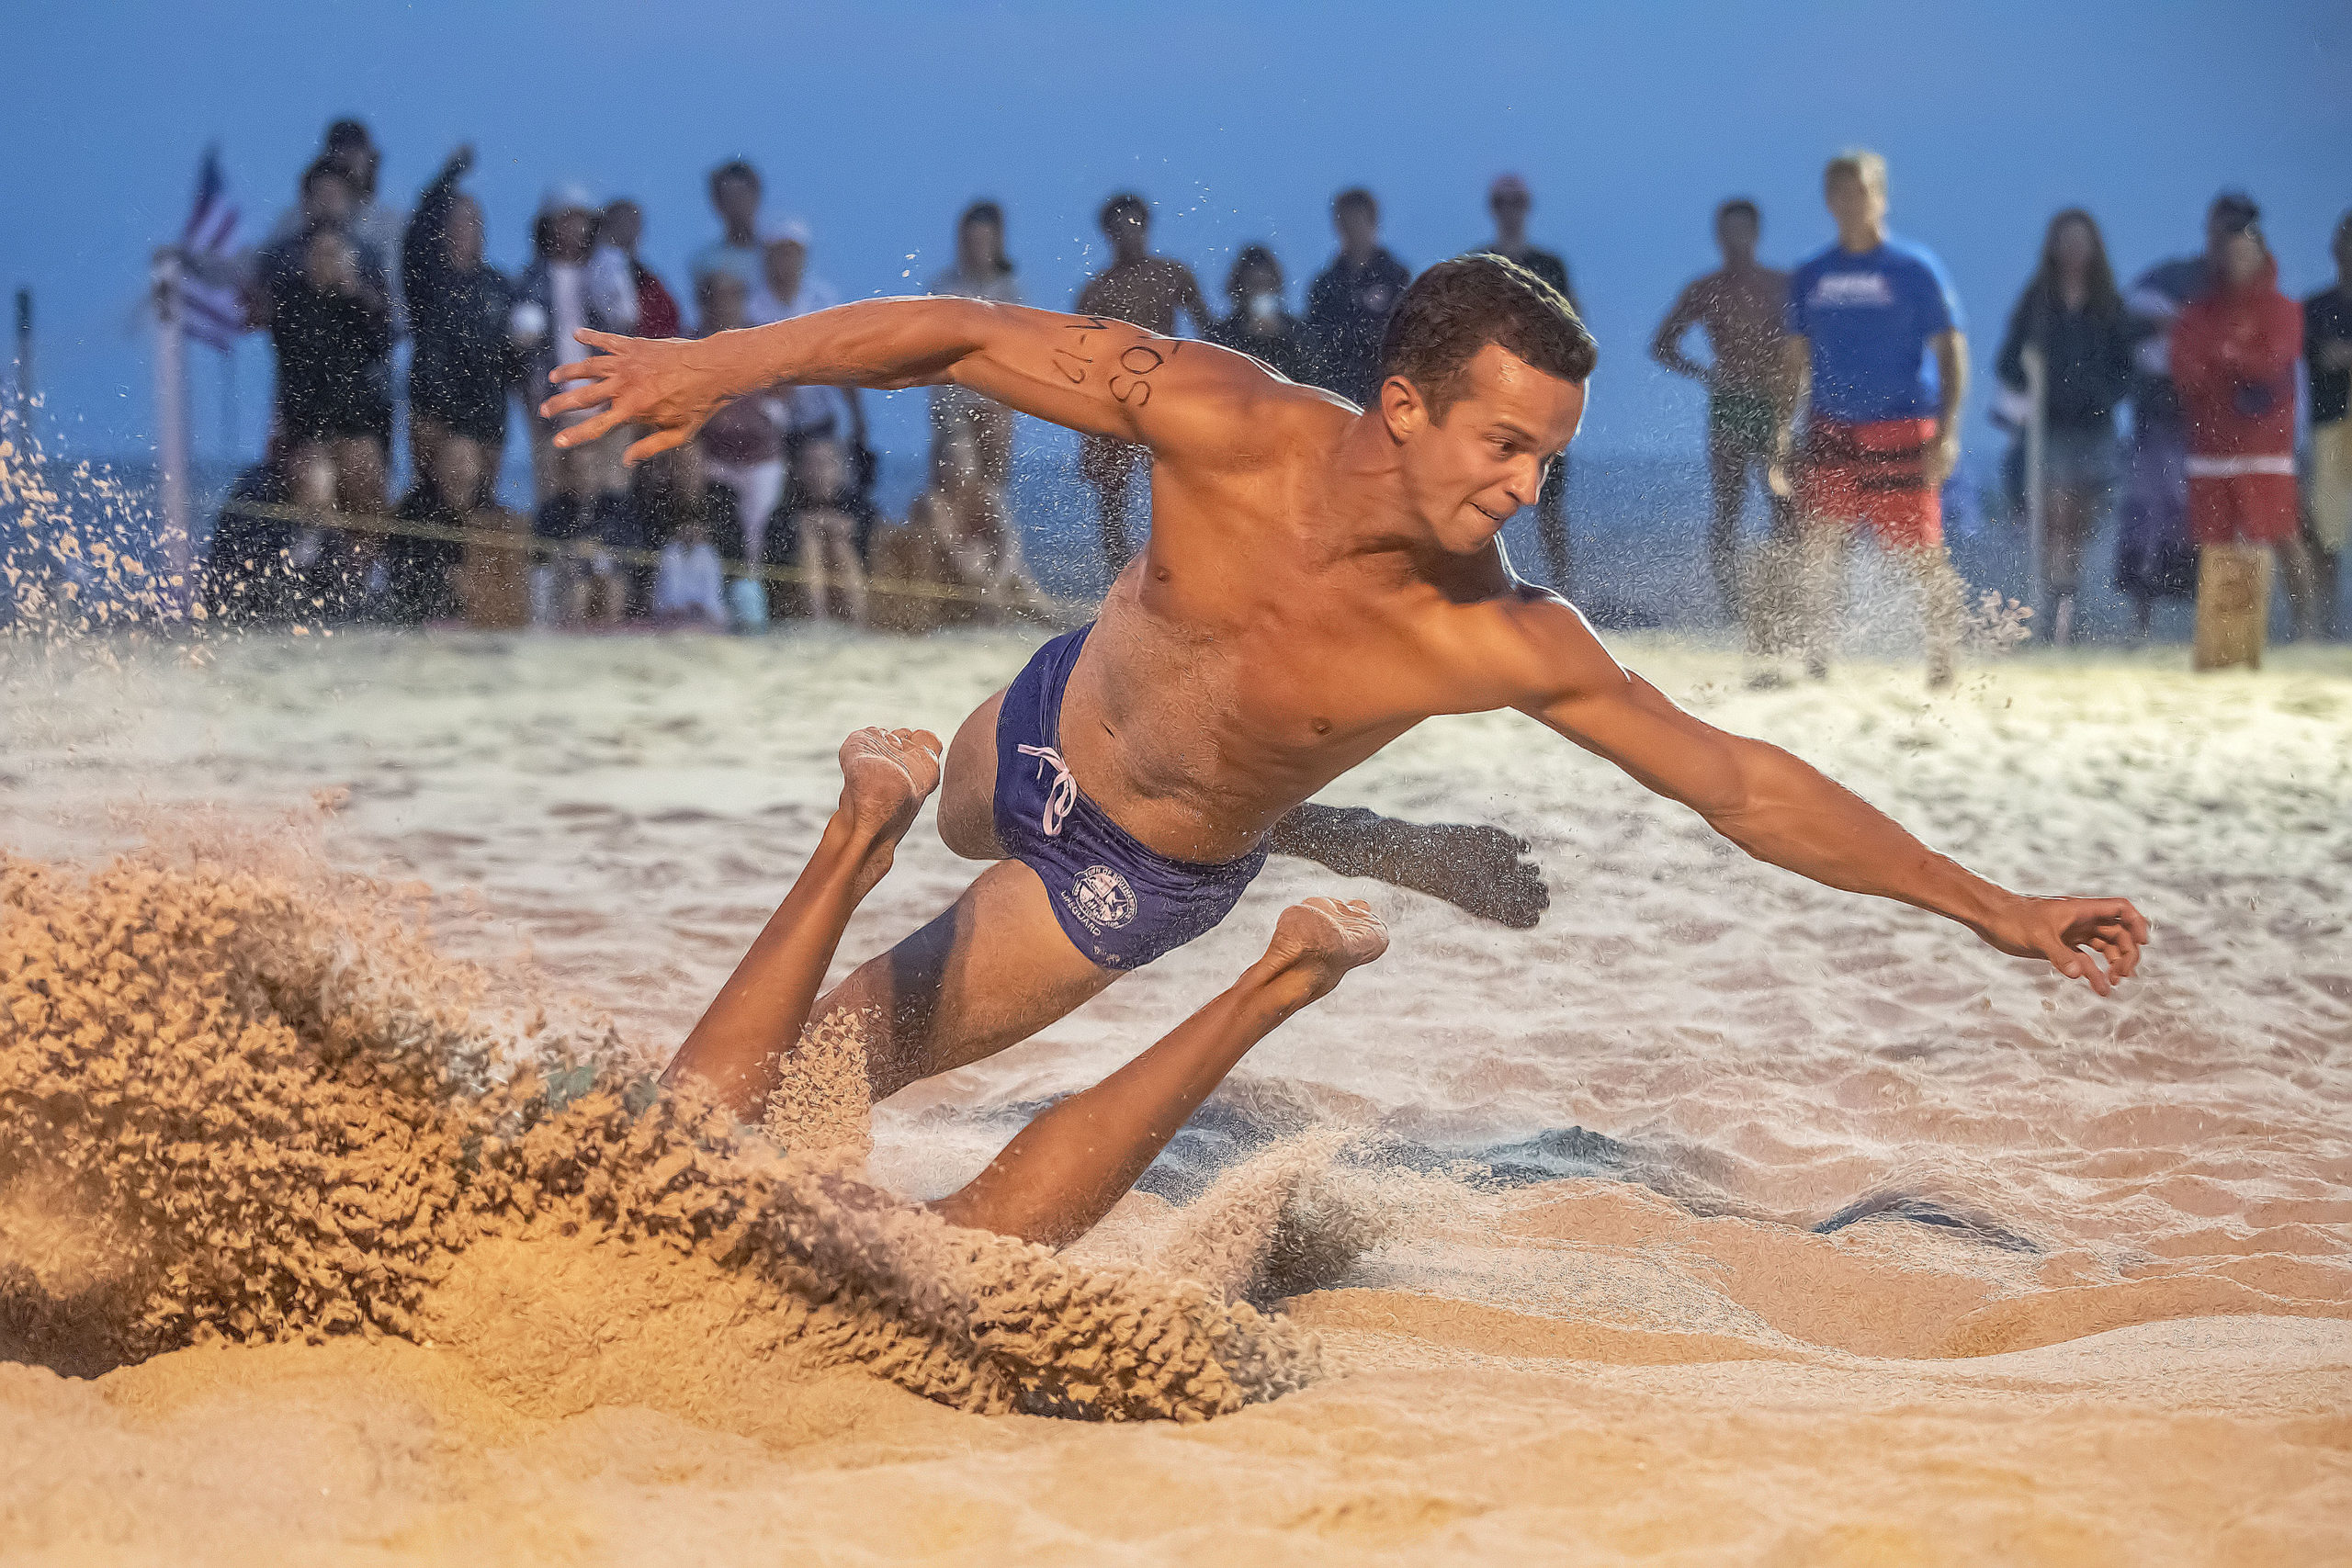 Southampton Town lifeguard Casey Crowley reaches for a flag at the finish line during the men's beach flags competition.